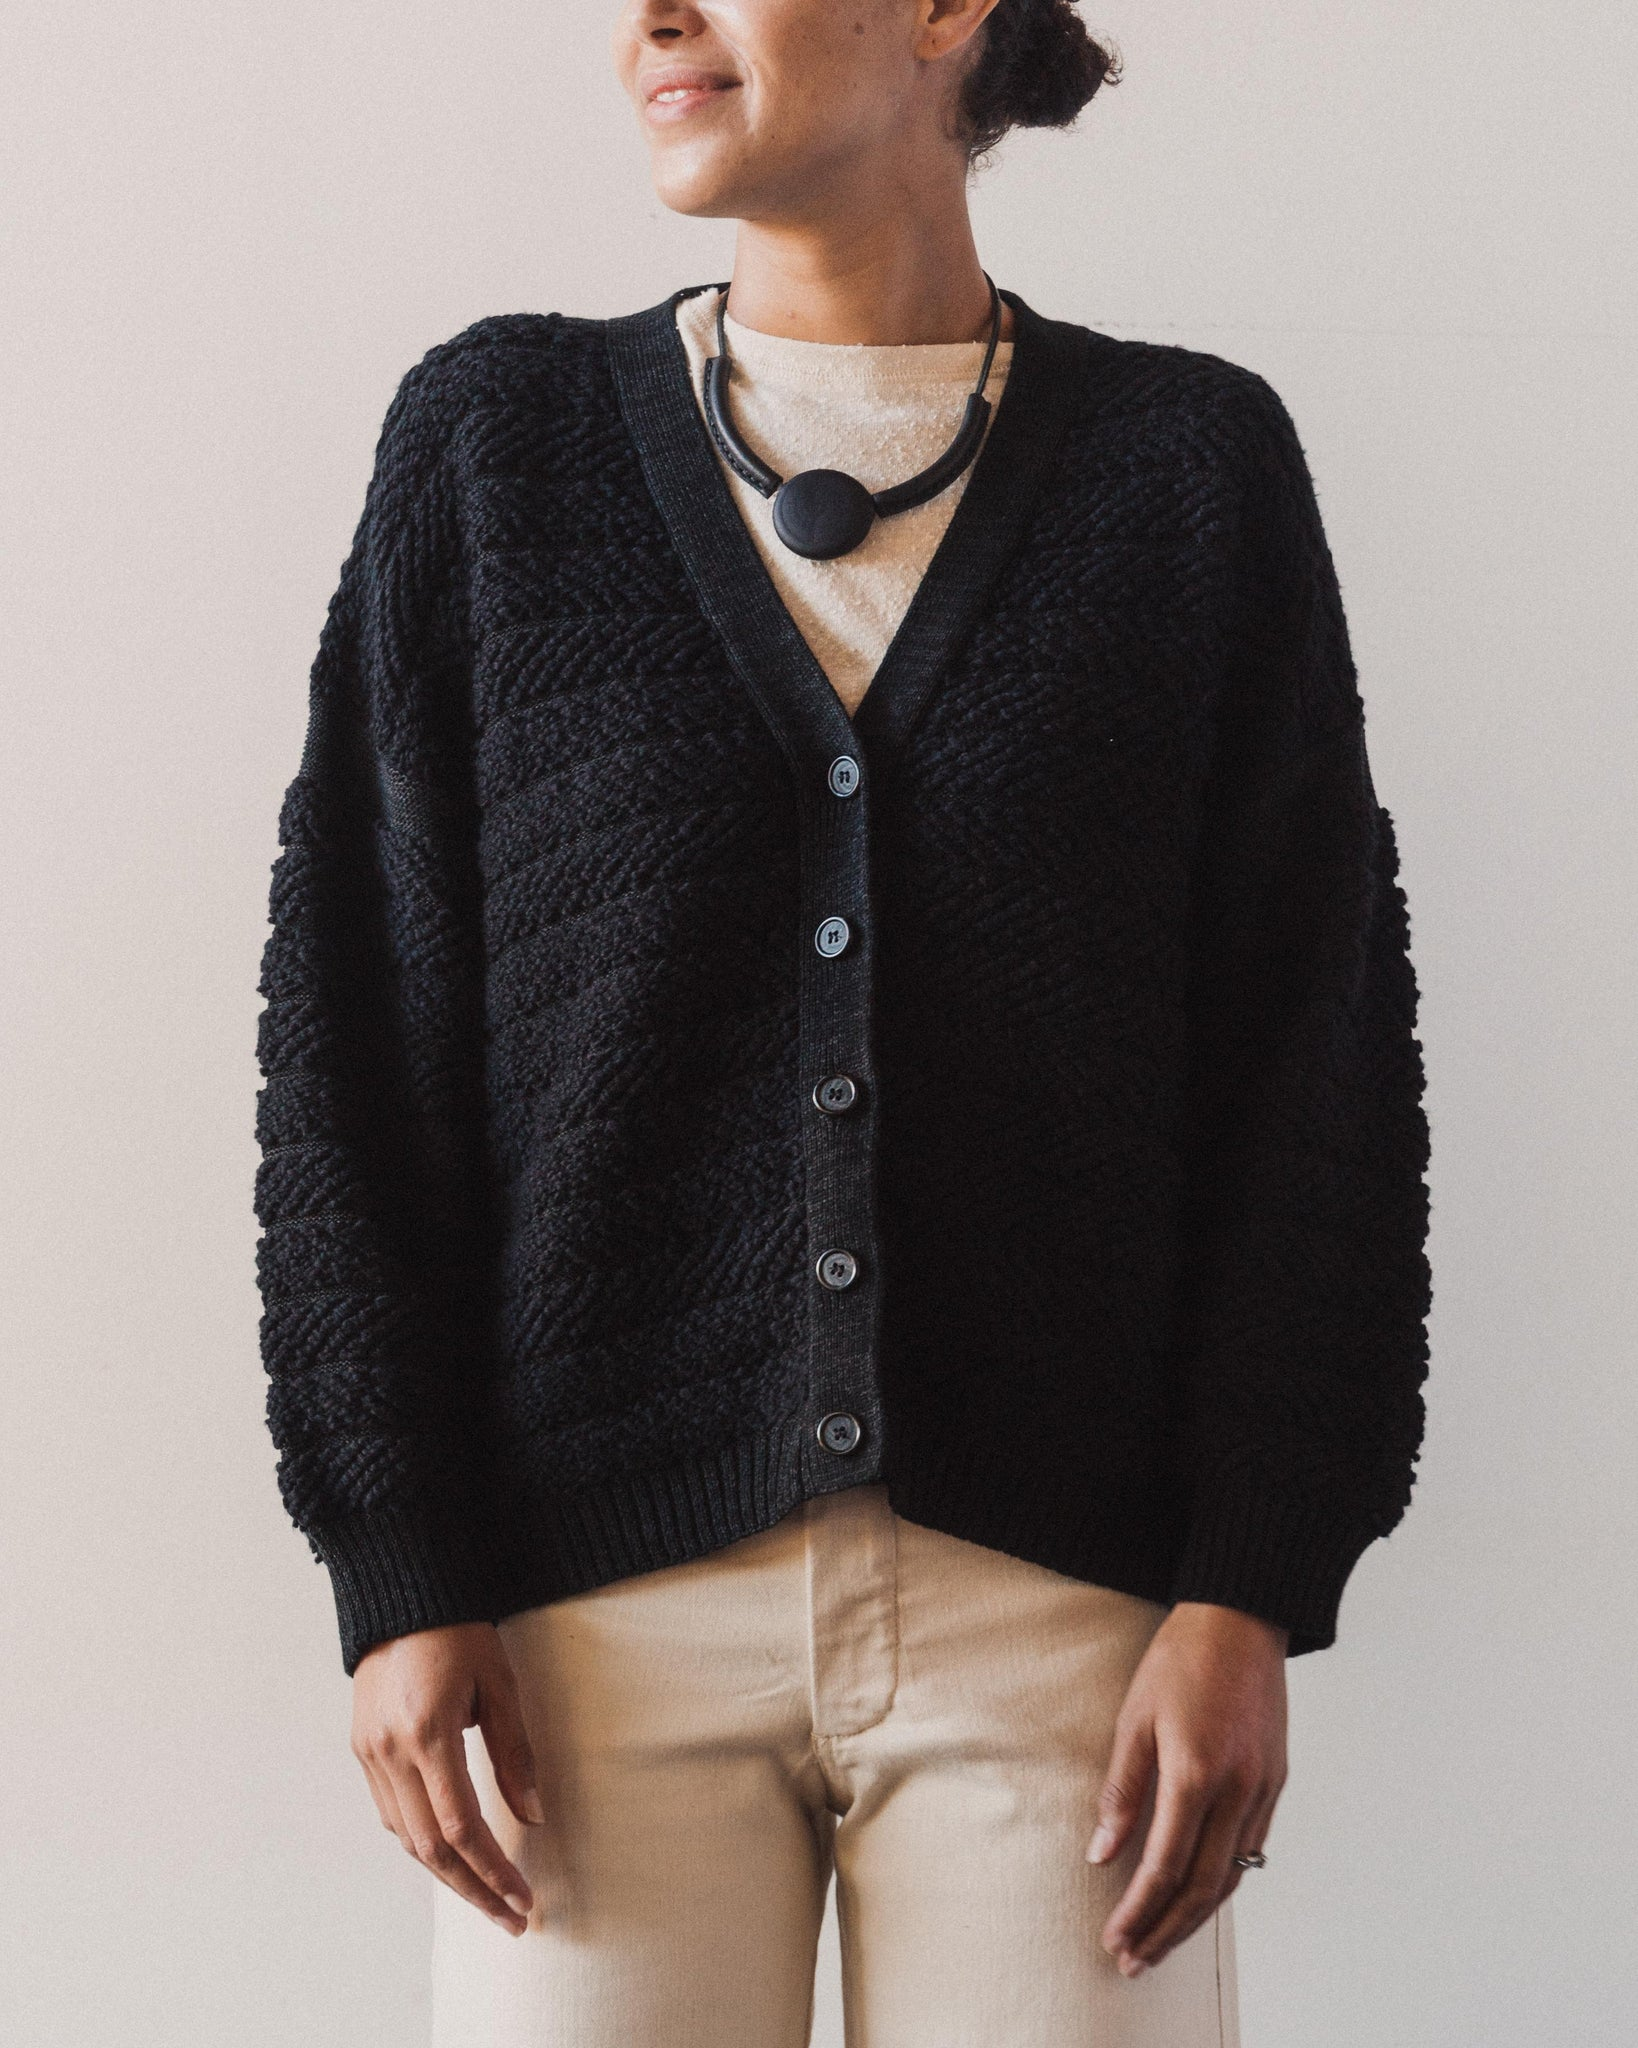 Micaela Greg Loop Cardigan, Melange Black